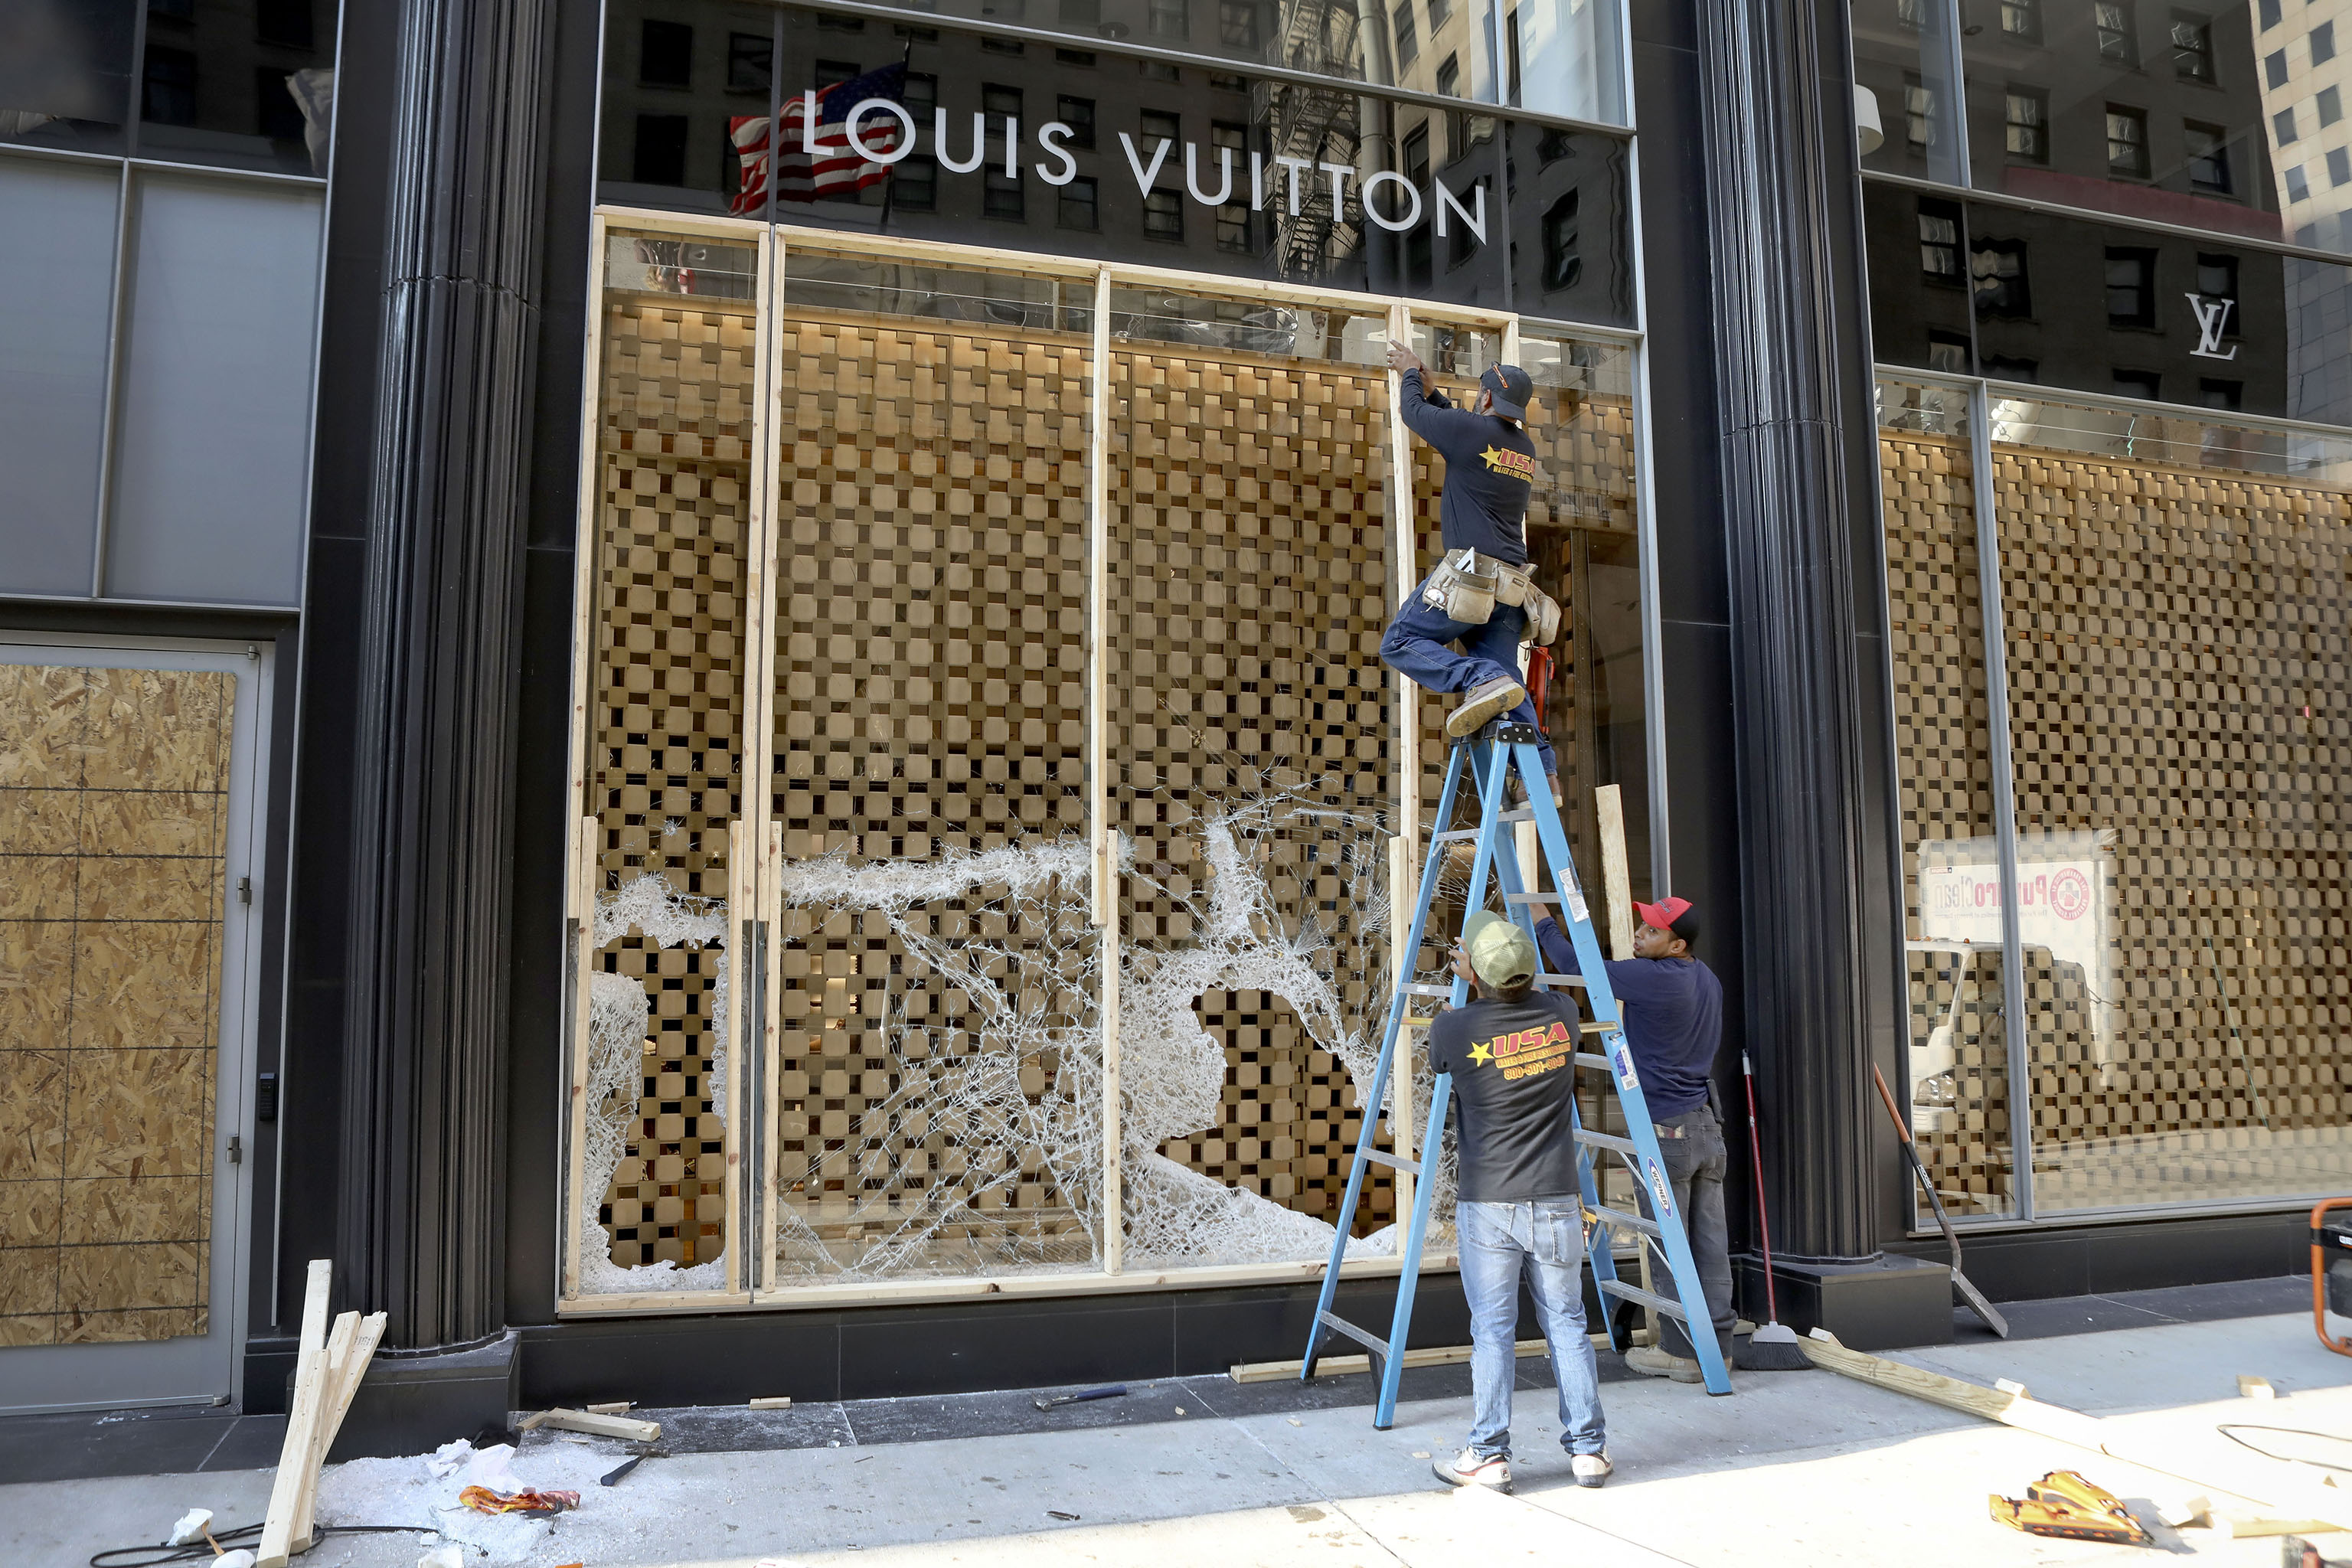 Workers begin to board up a display window at the Louis Vuitton store Monday, Aug. 10, 2020, after overnight vandals hit many high-end stores in Chicago. Chicago's police commissioner says more than 100 people were arrested following a night of looting and unrest that left several officers injured and caused damage in the city's upscale Magnificent Mile shopping district and other parts of the city. (AP Photo/Teresa Crawford)